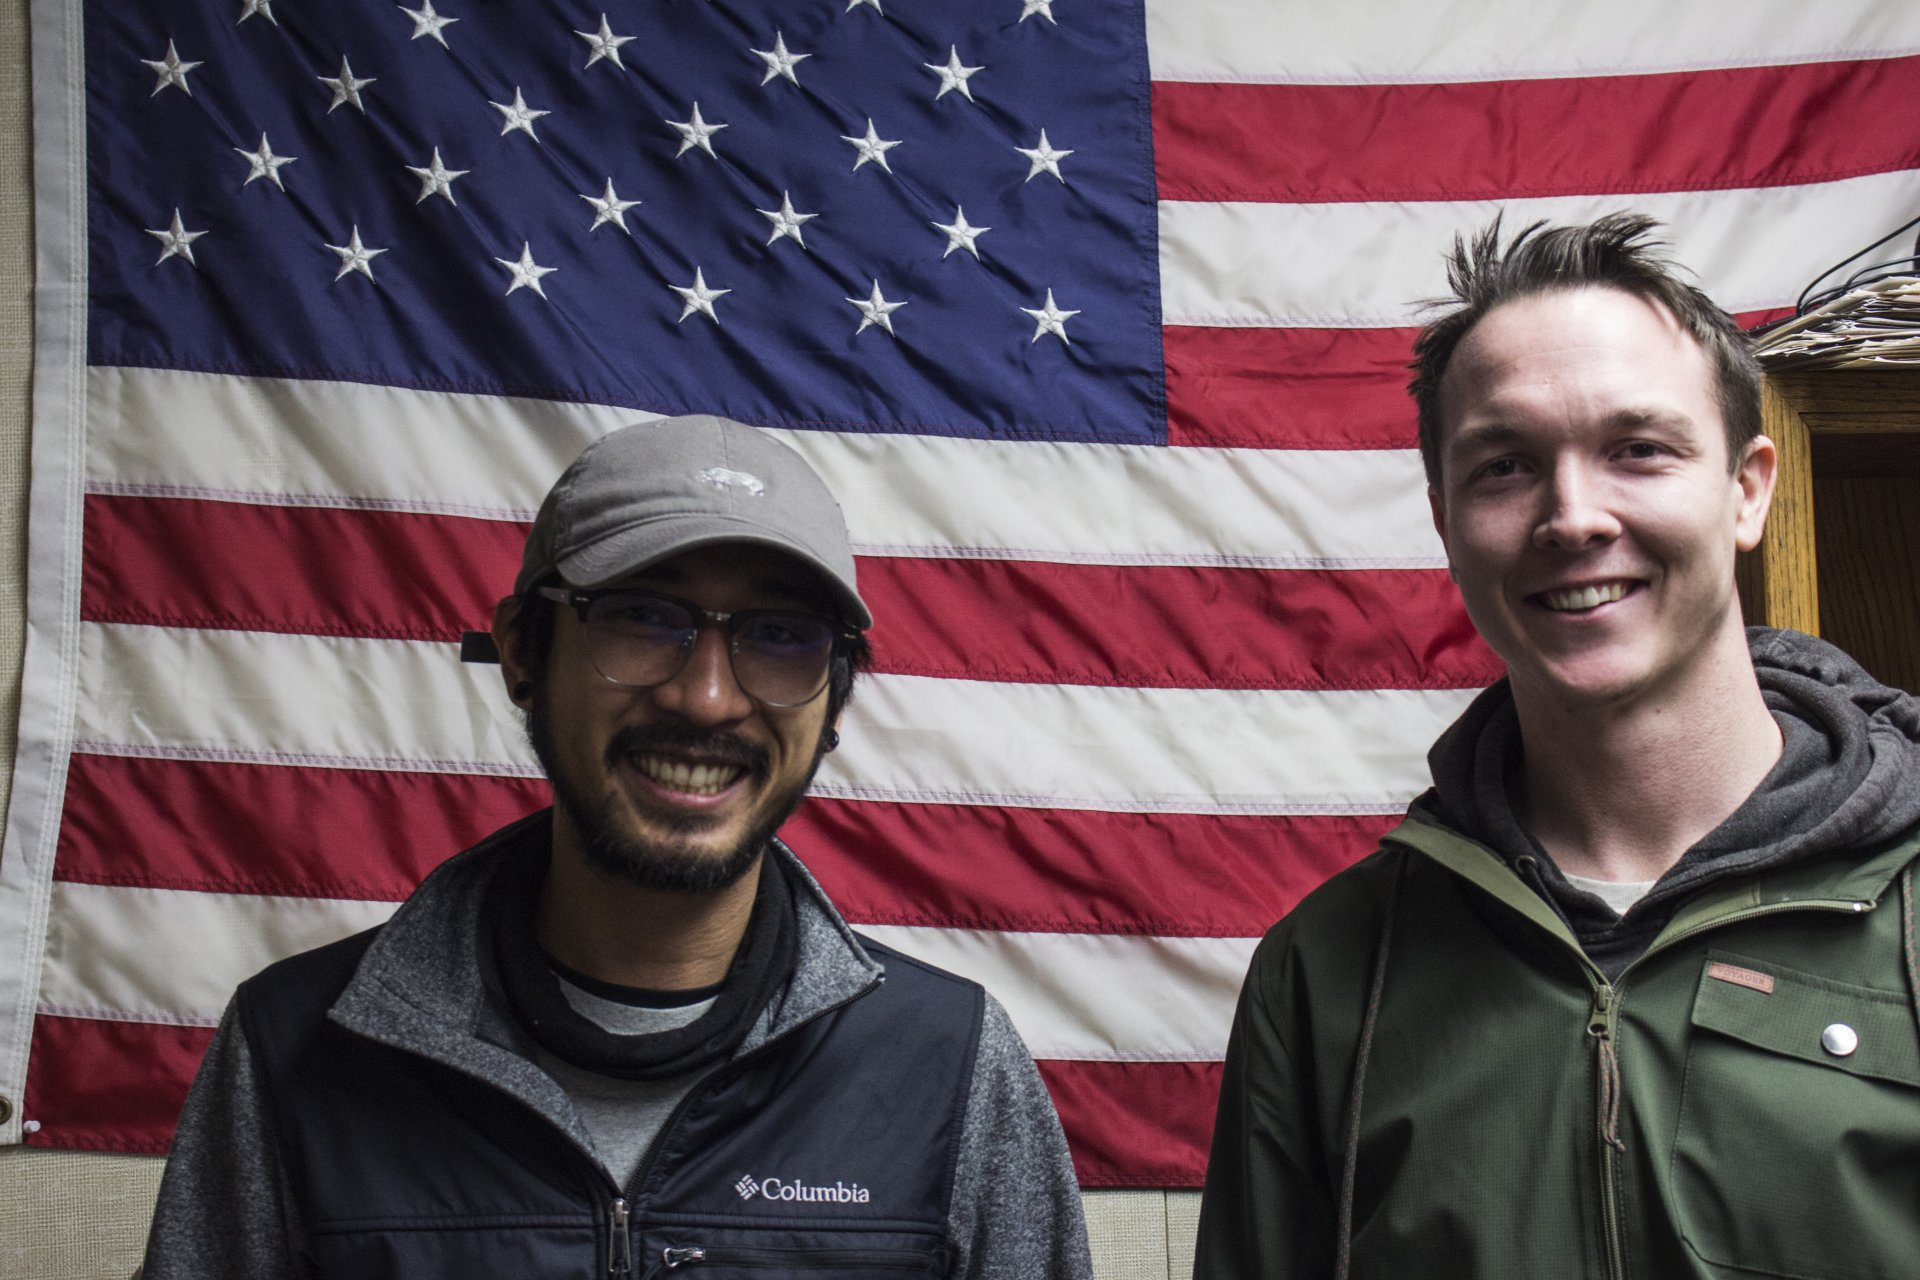 HSU veteran students Paulo Martin and Sean Dent met in the Veterans Office's outdoor program and found a community of other veterans. | File photo by T. William Wallin